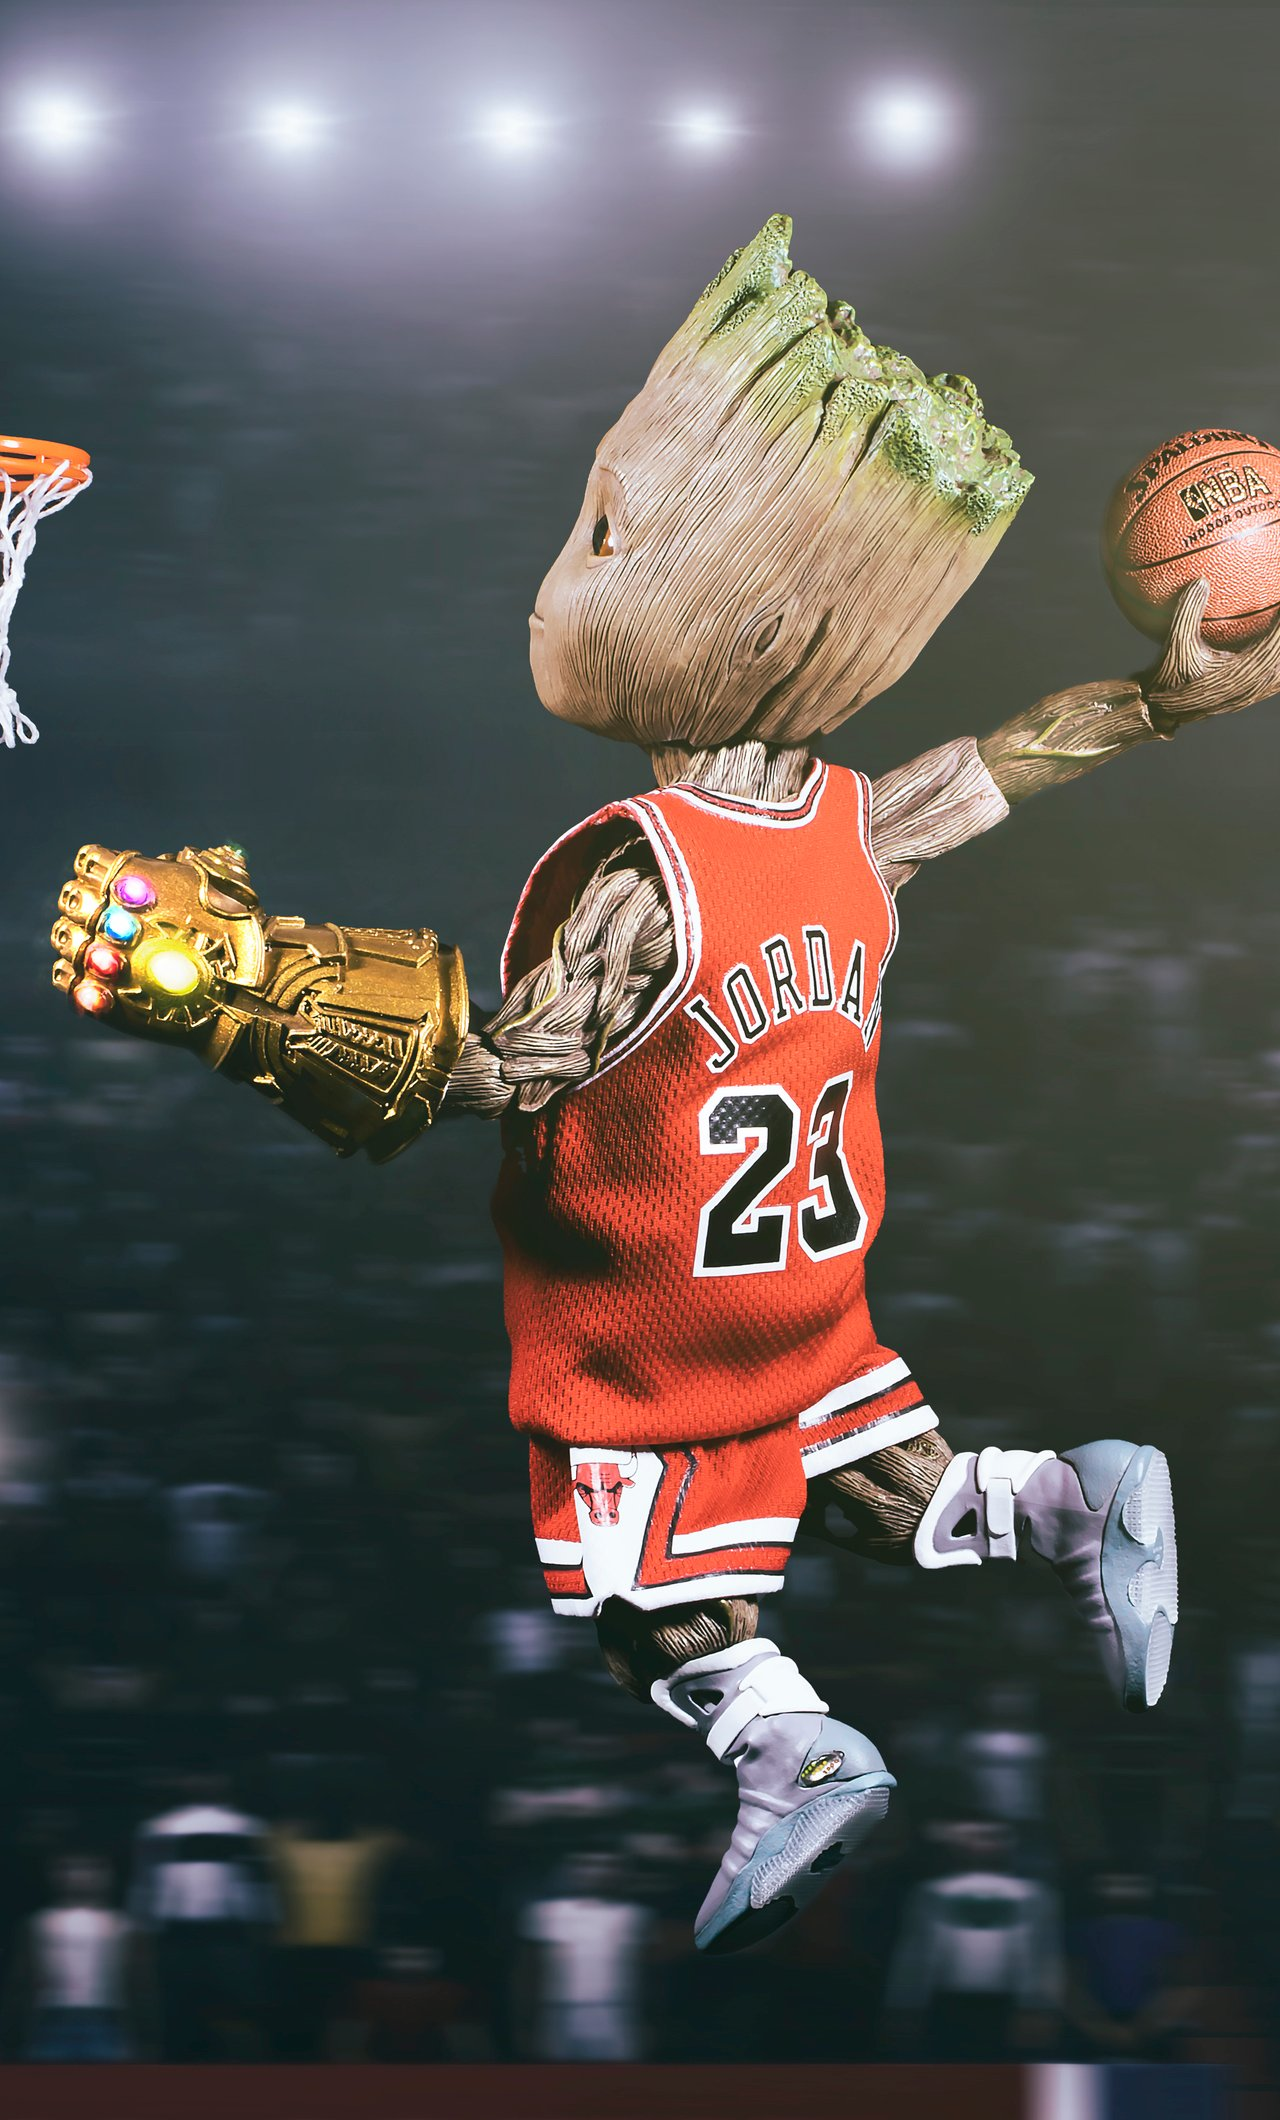 Cartoon Basketball Wallpapers Wallpaper Cave